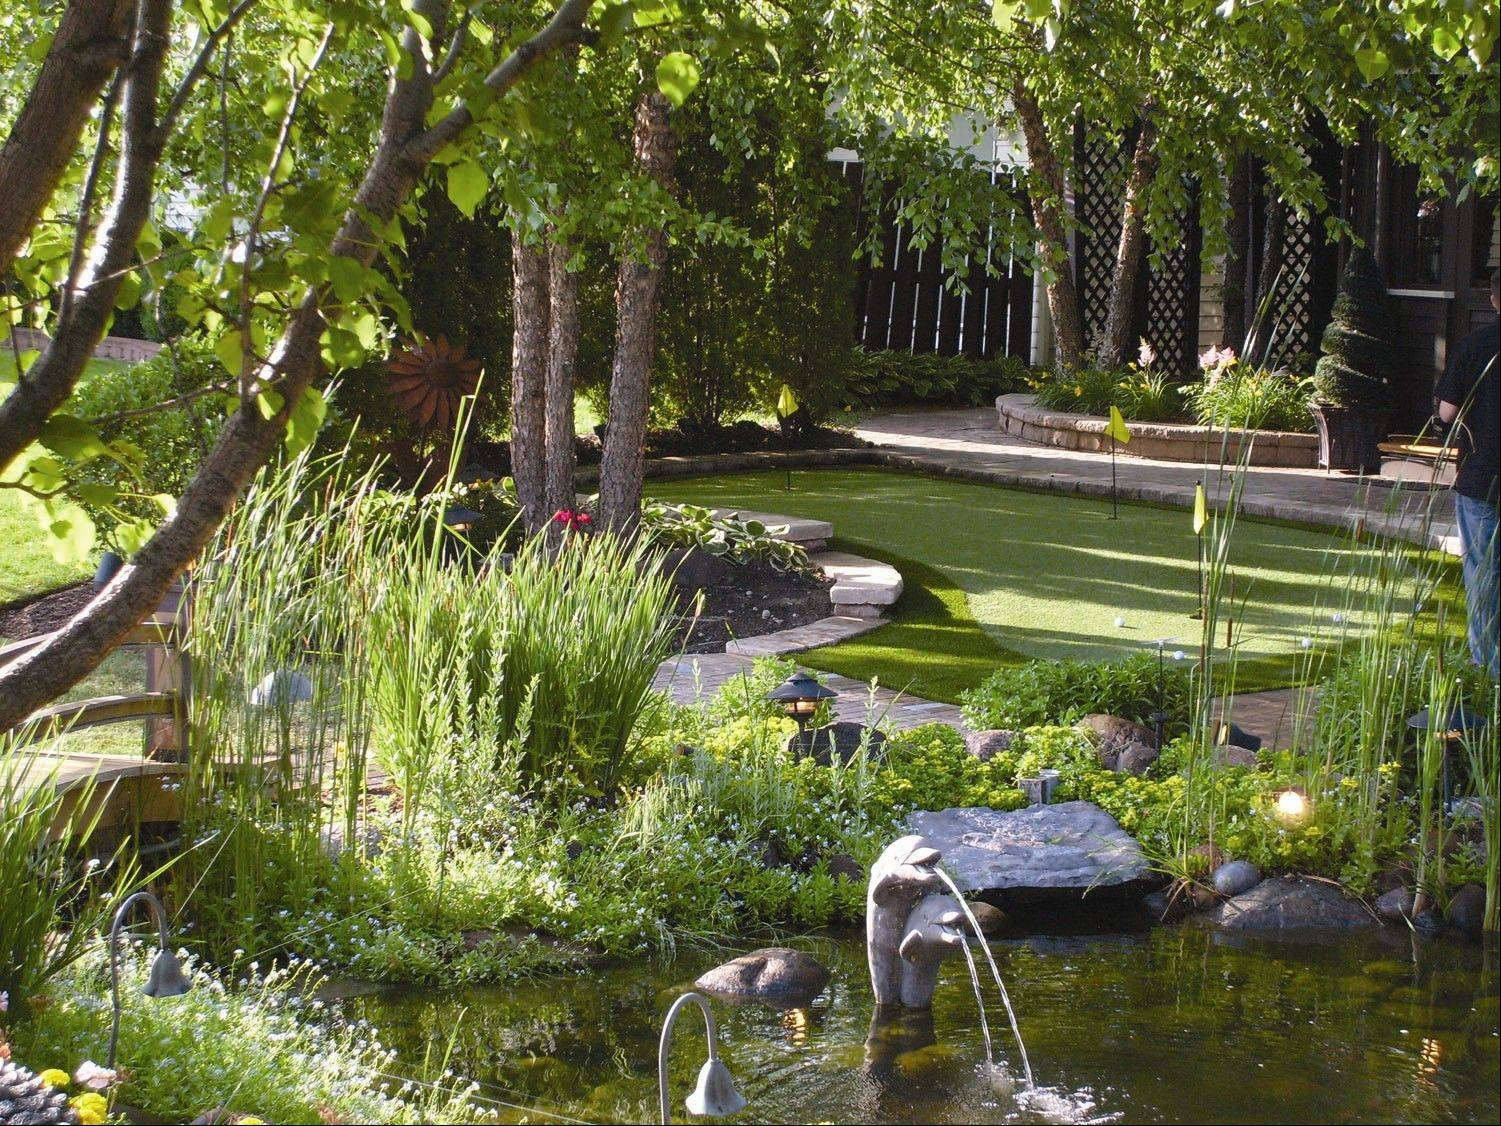 RYCO Landscaping created this small putting green for a client. The company's designers interview clients to propose improvements that fit a homeowner's lifestyle.